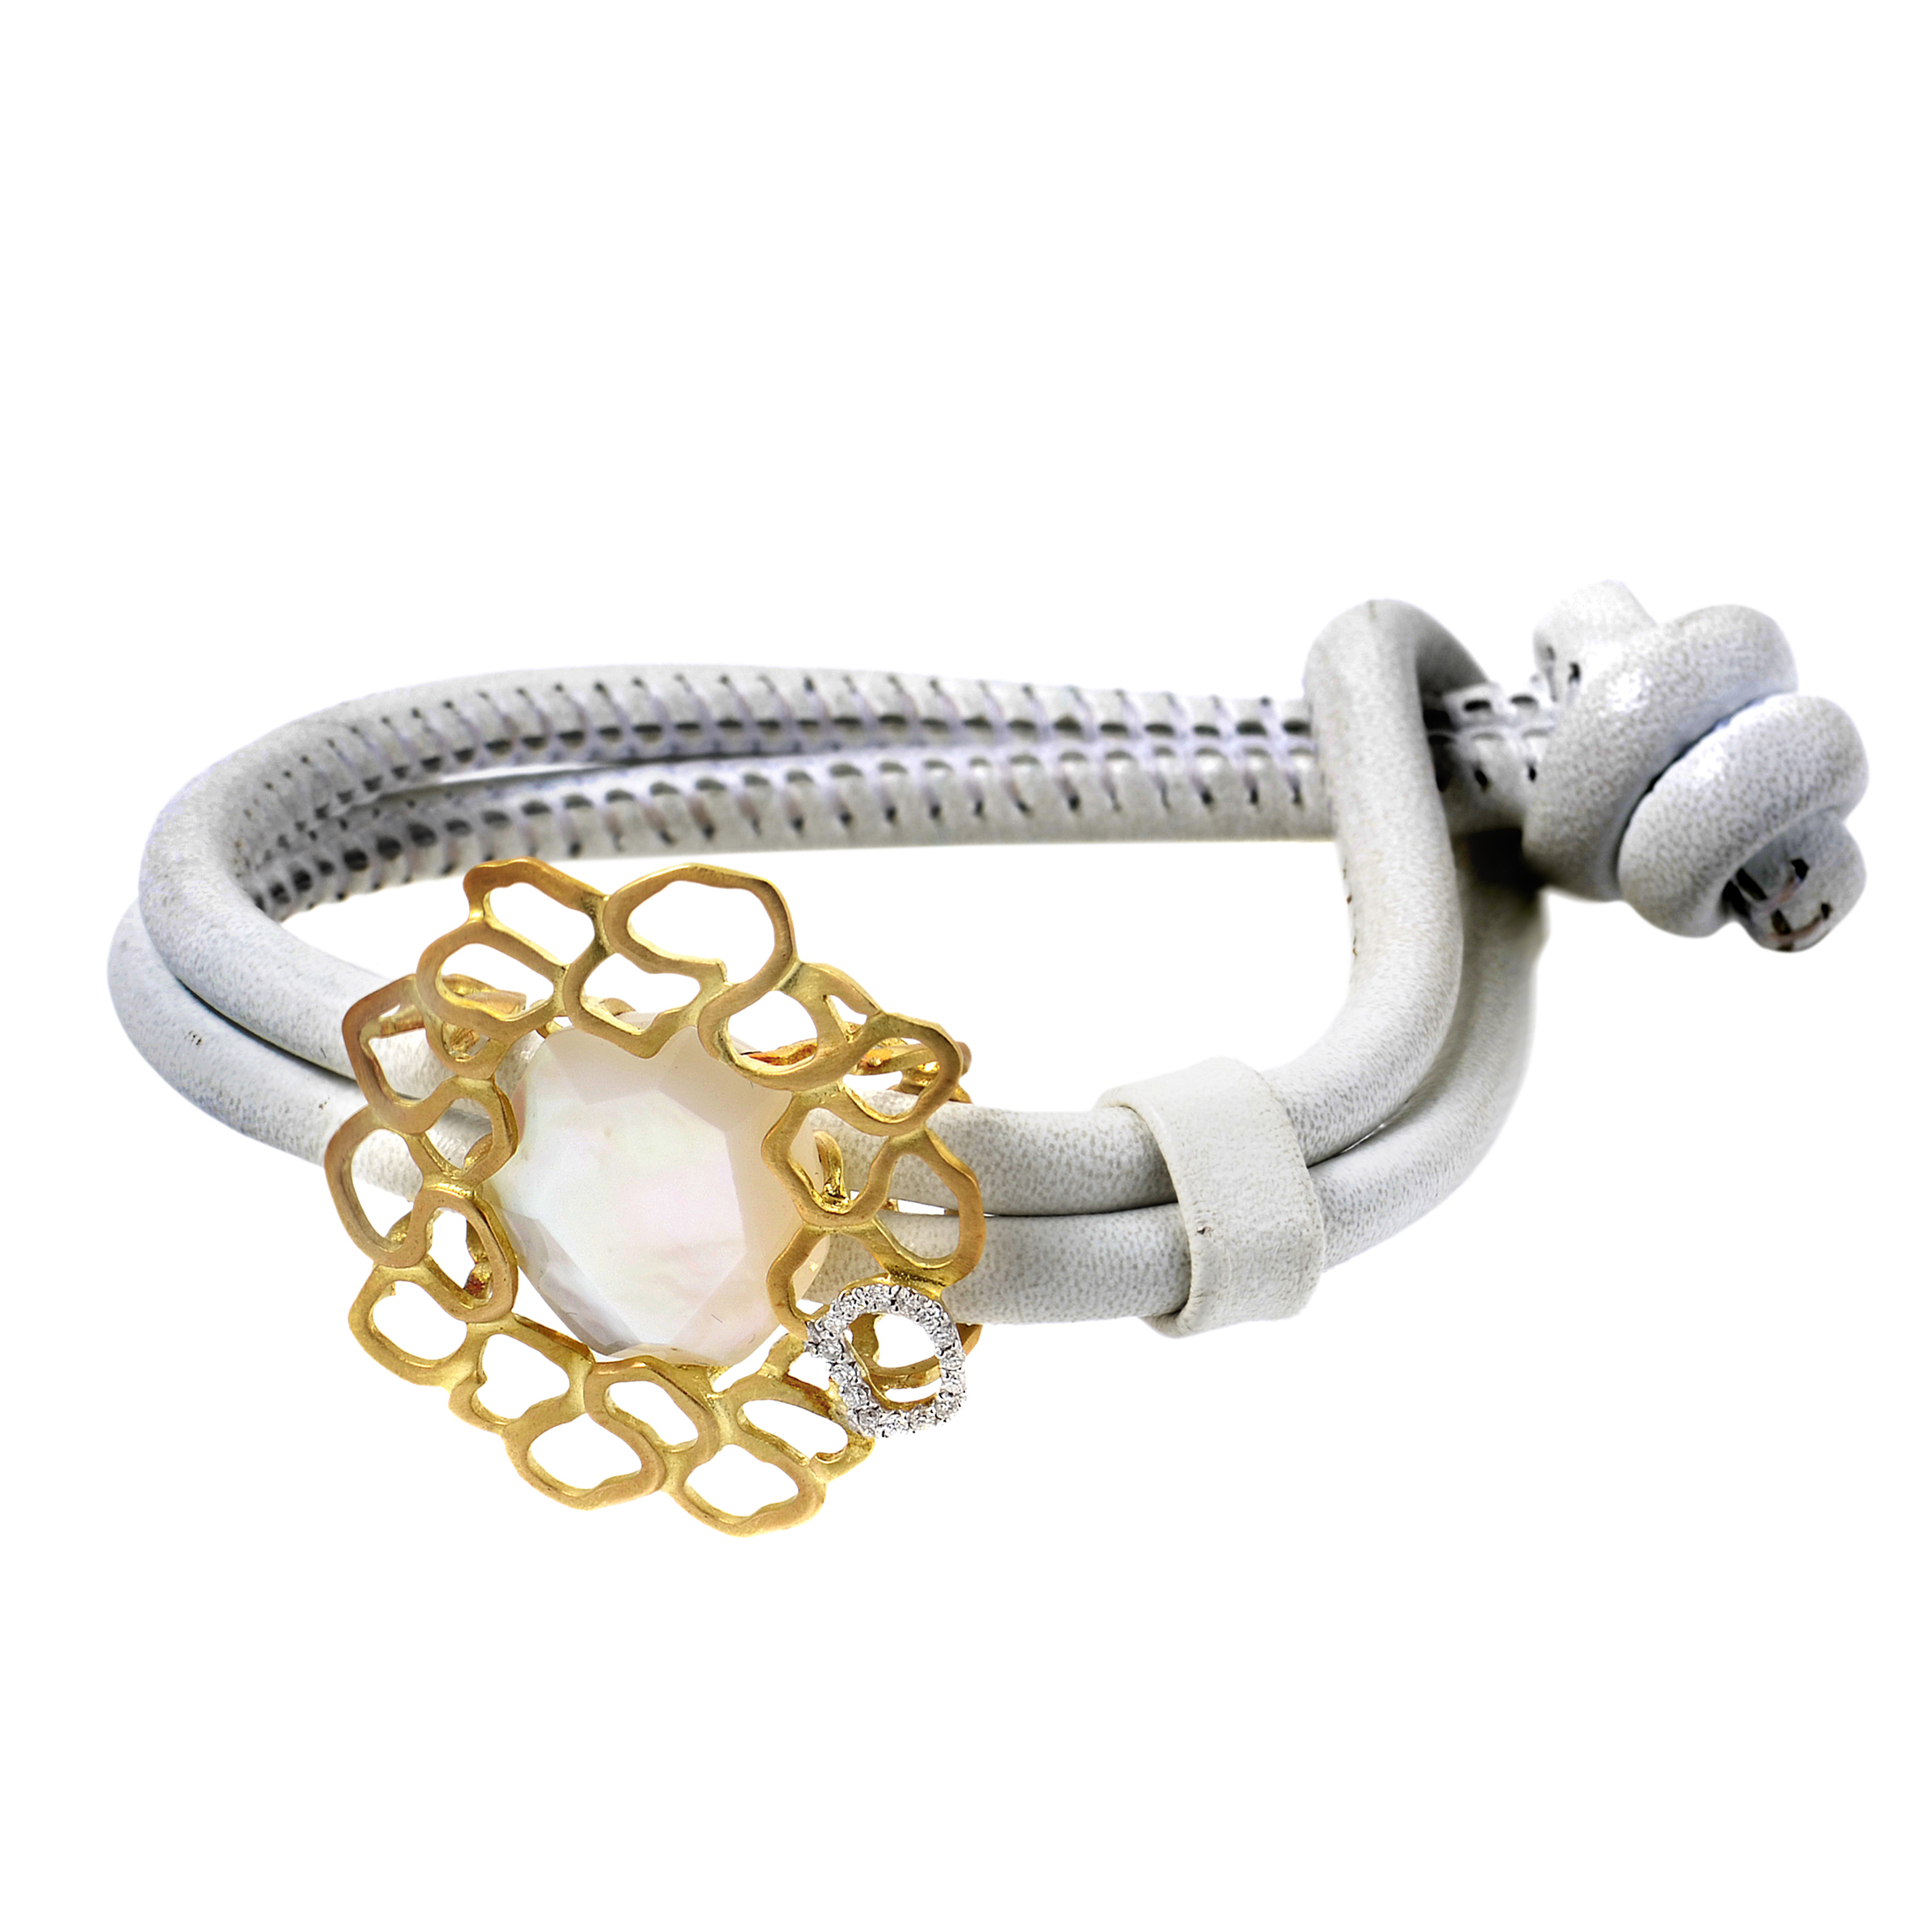 LeaderLine 18K Yellow Gold Mother of Pearl & Diamond Leather Bracelet